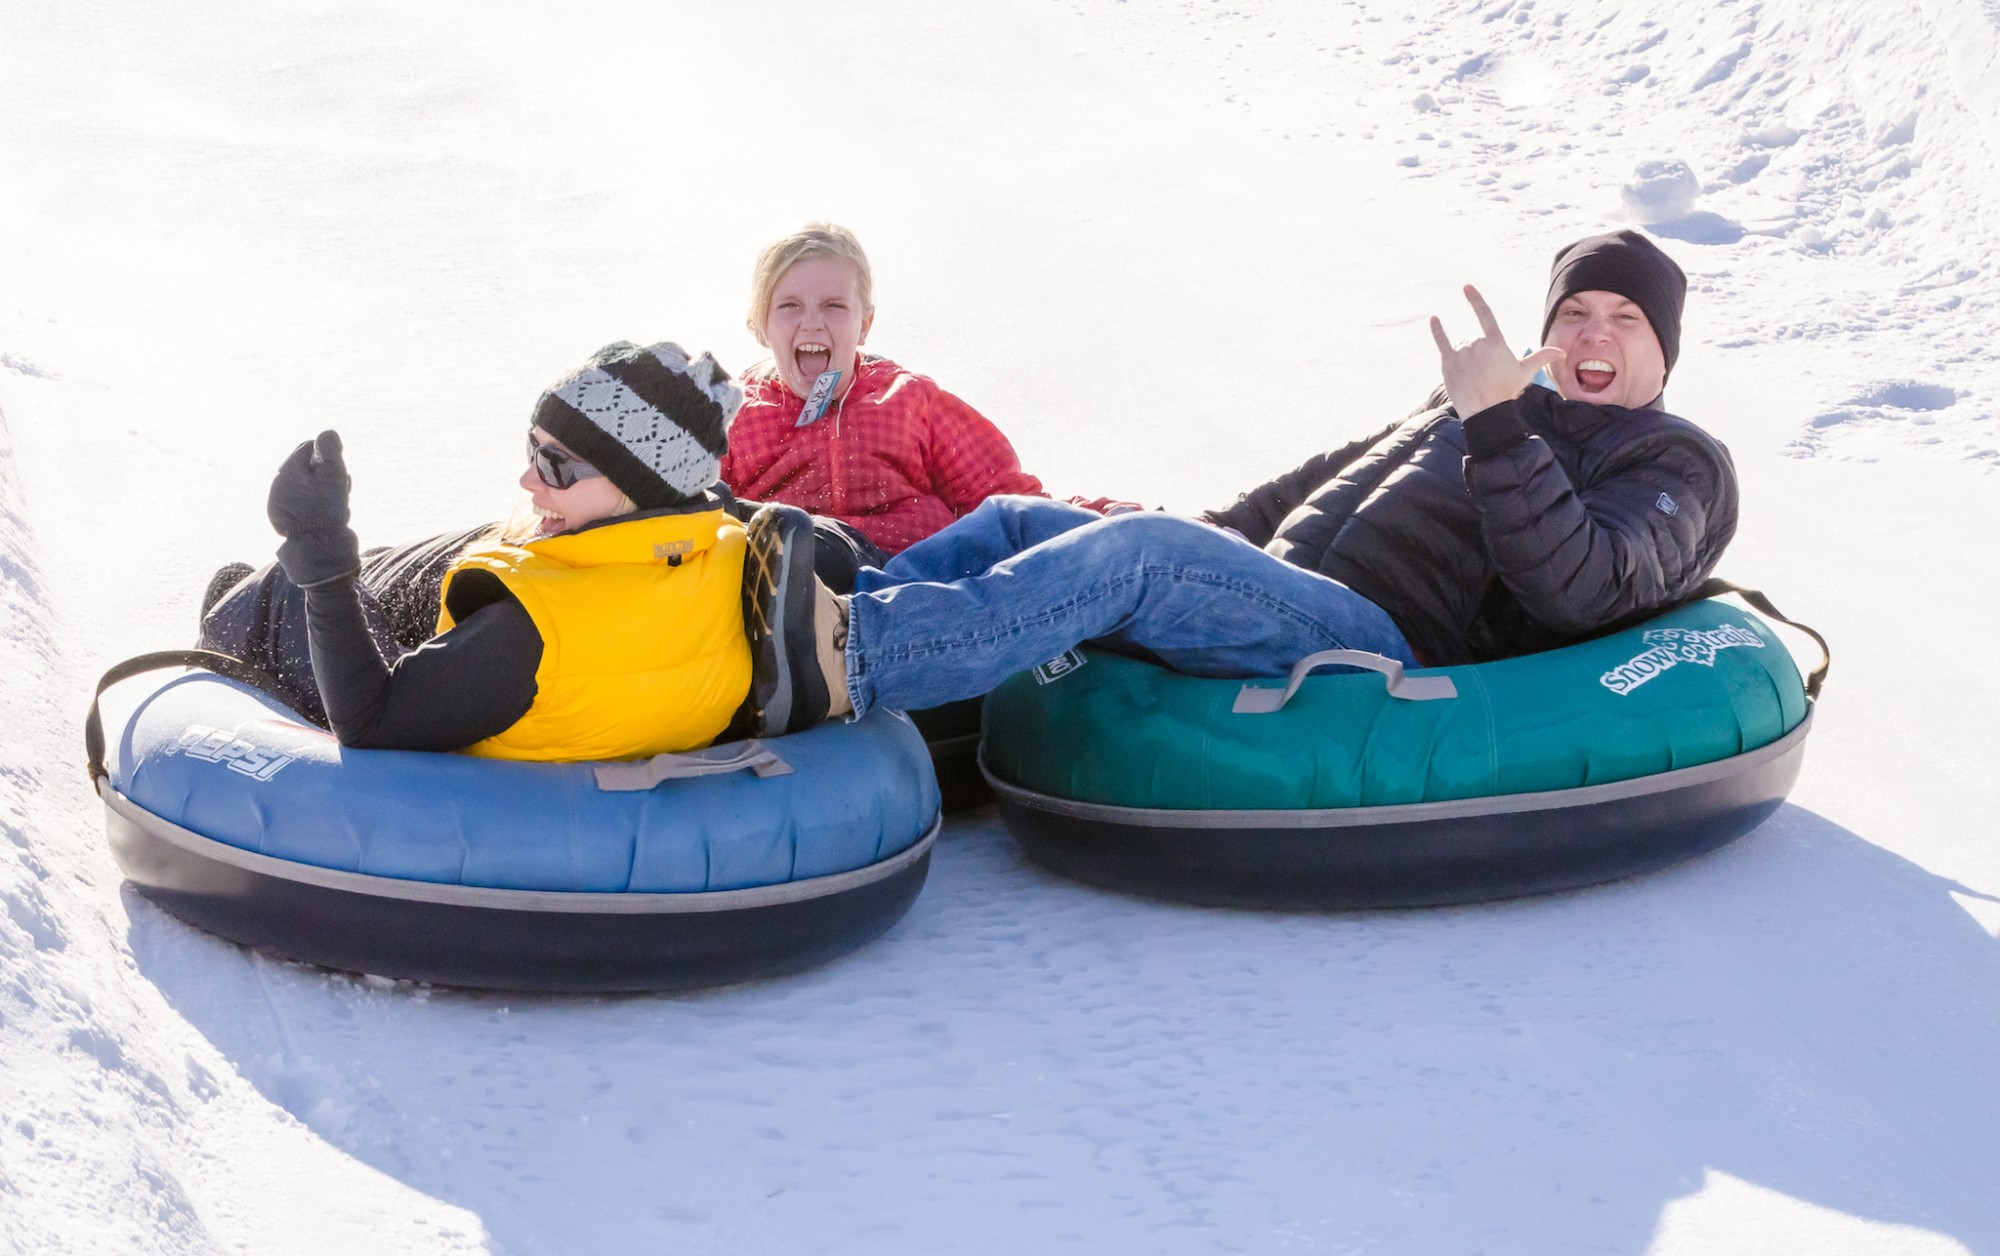 Snow Tubing Vertical Descent Tubing Park at Snow Trails